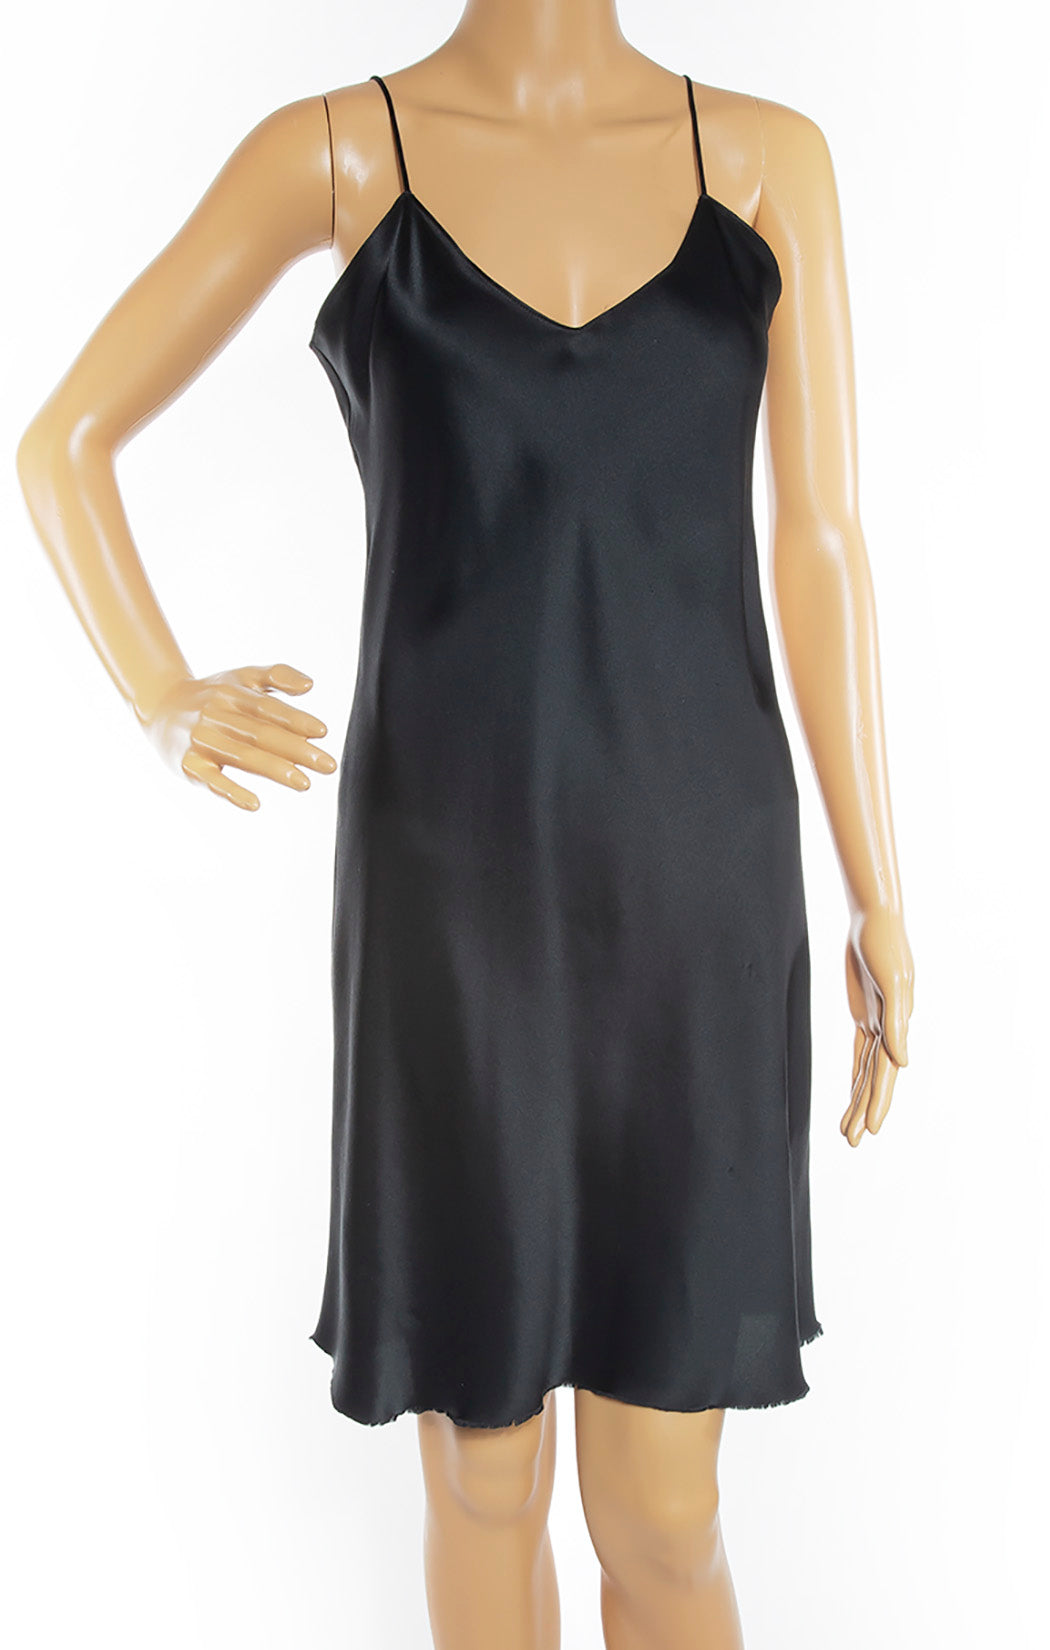 Closeup view of NILI LOTAN Slip Dress Size: Small